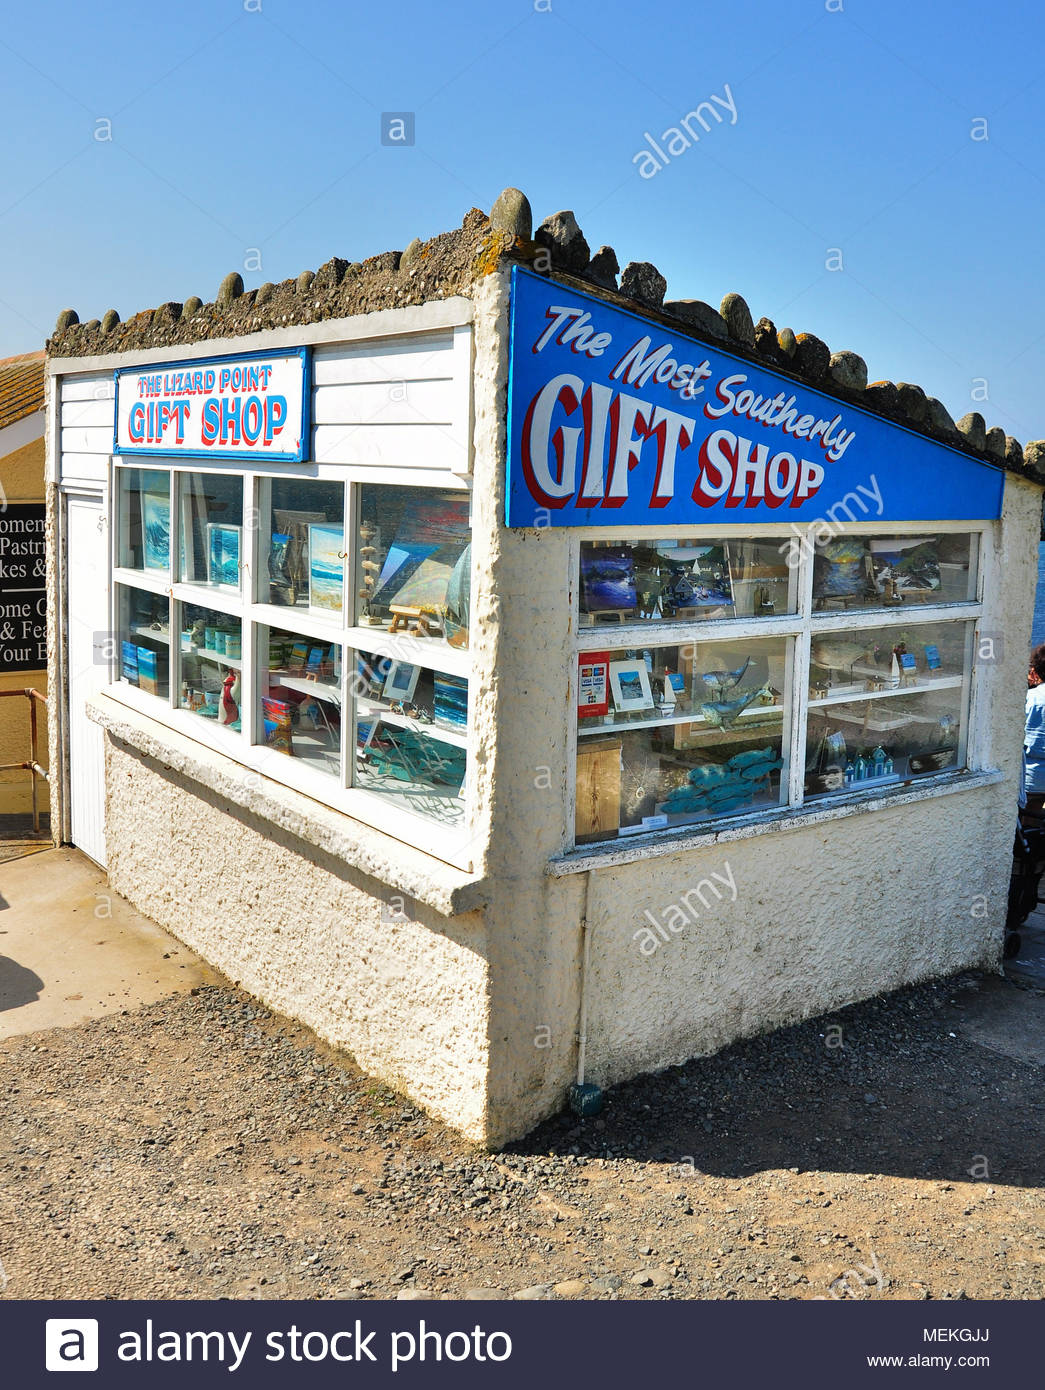 The most southerly gift shop on mainland Britain at Lizard Point, Cornwall, England, UK - Stock Image